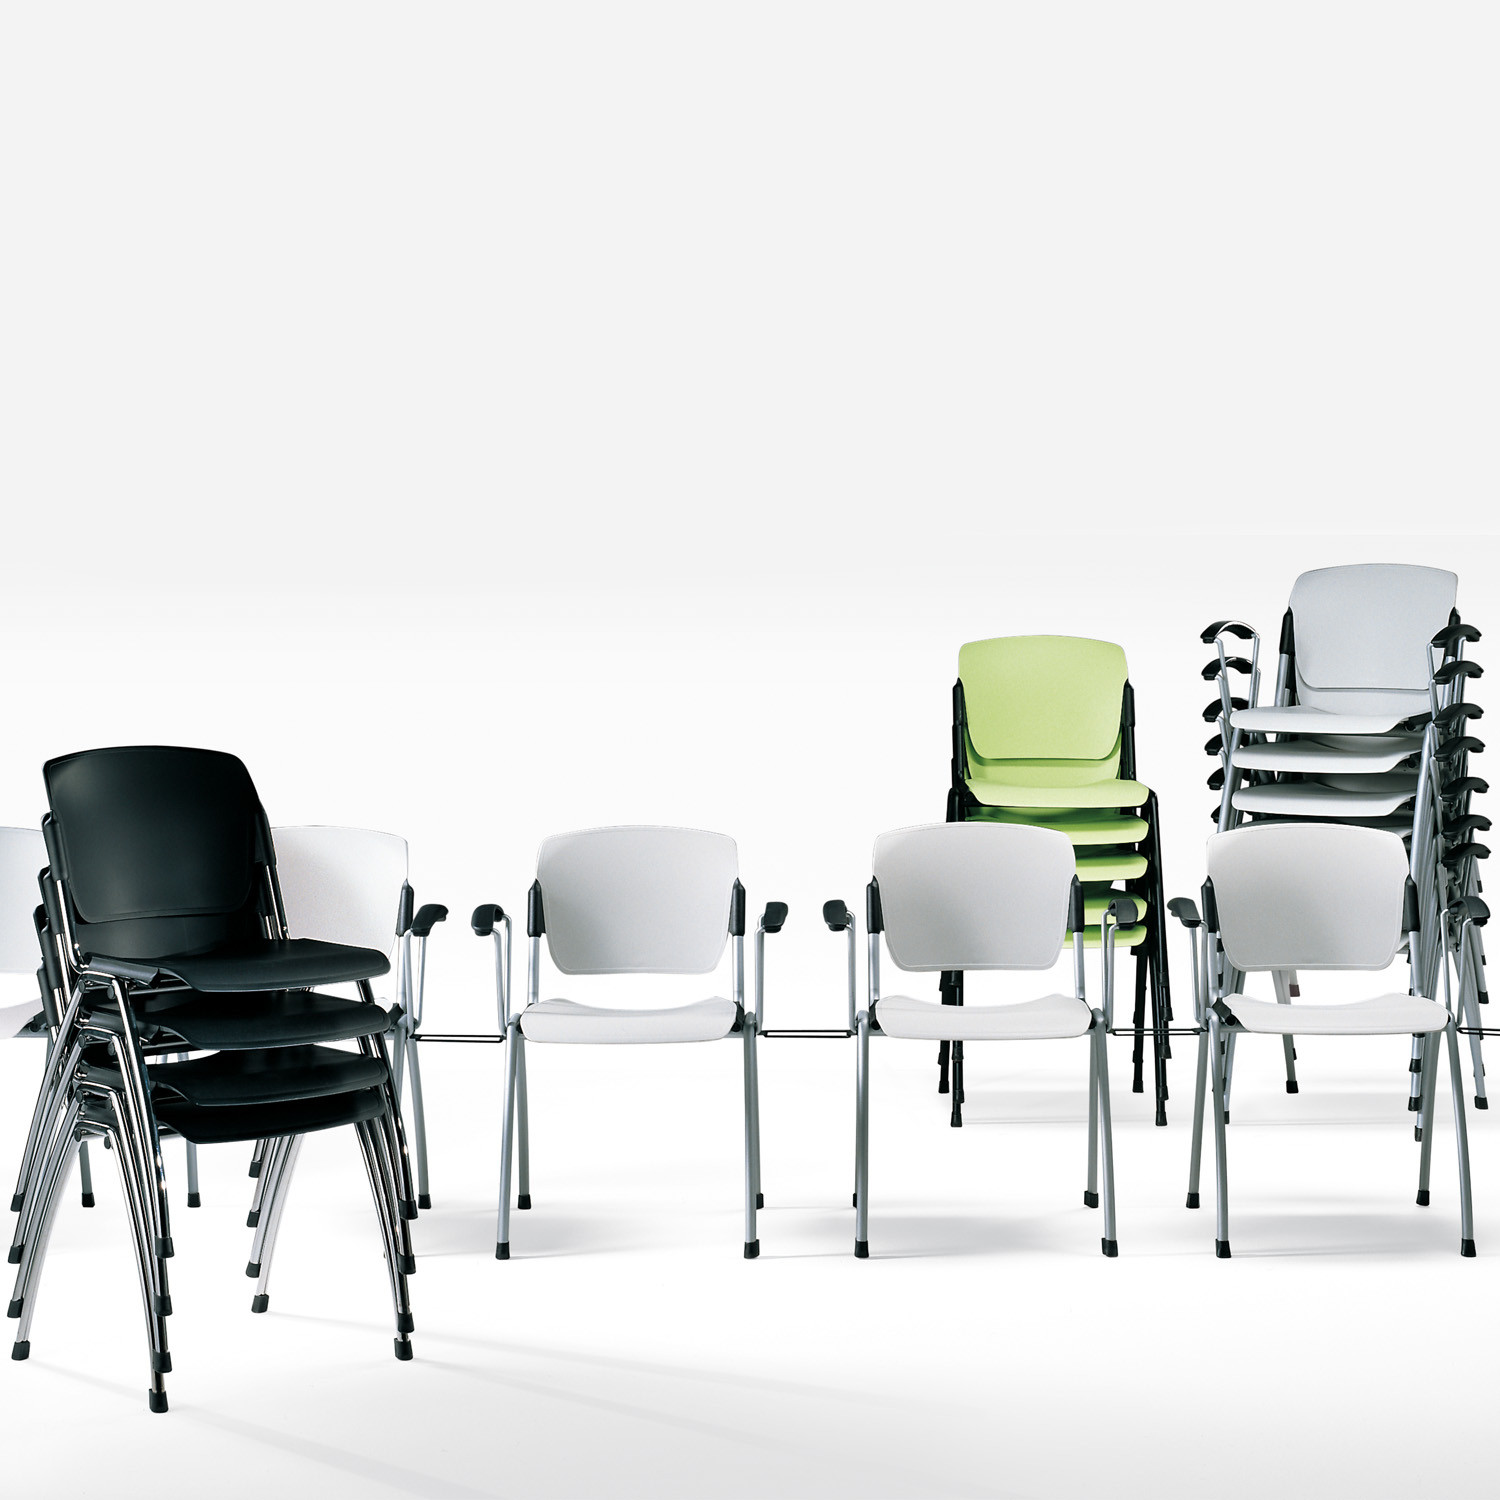 Mimi Chair is a Stacking Seating Solution ideal for Training Areas